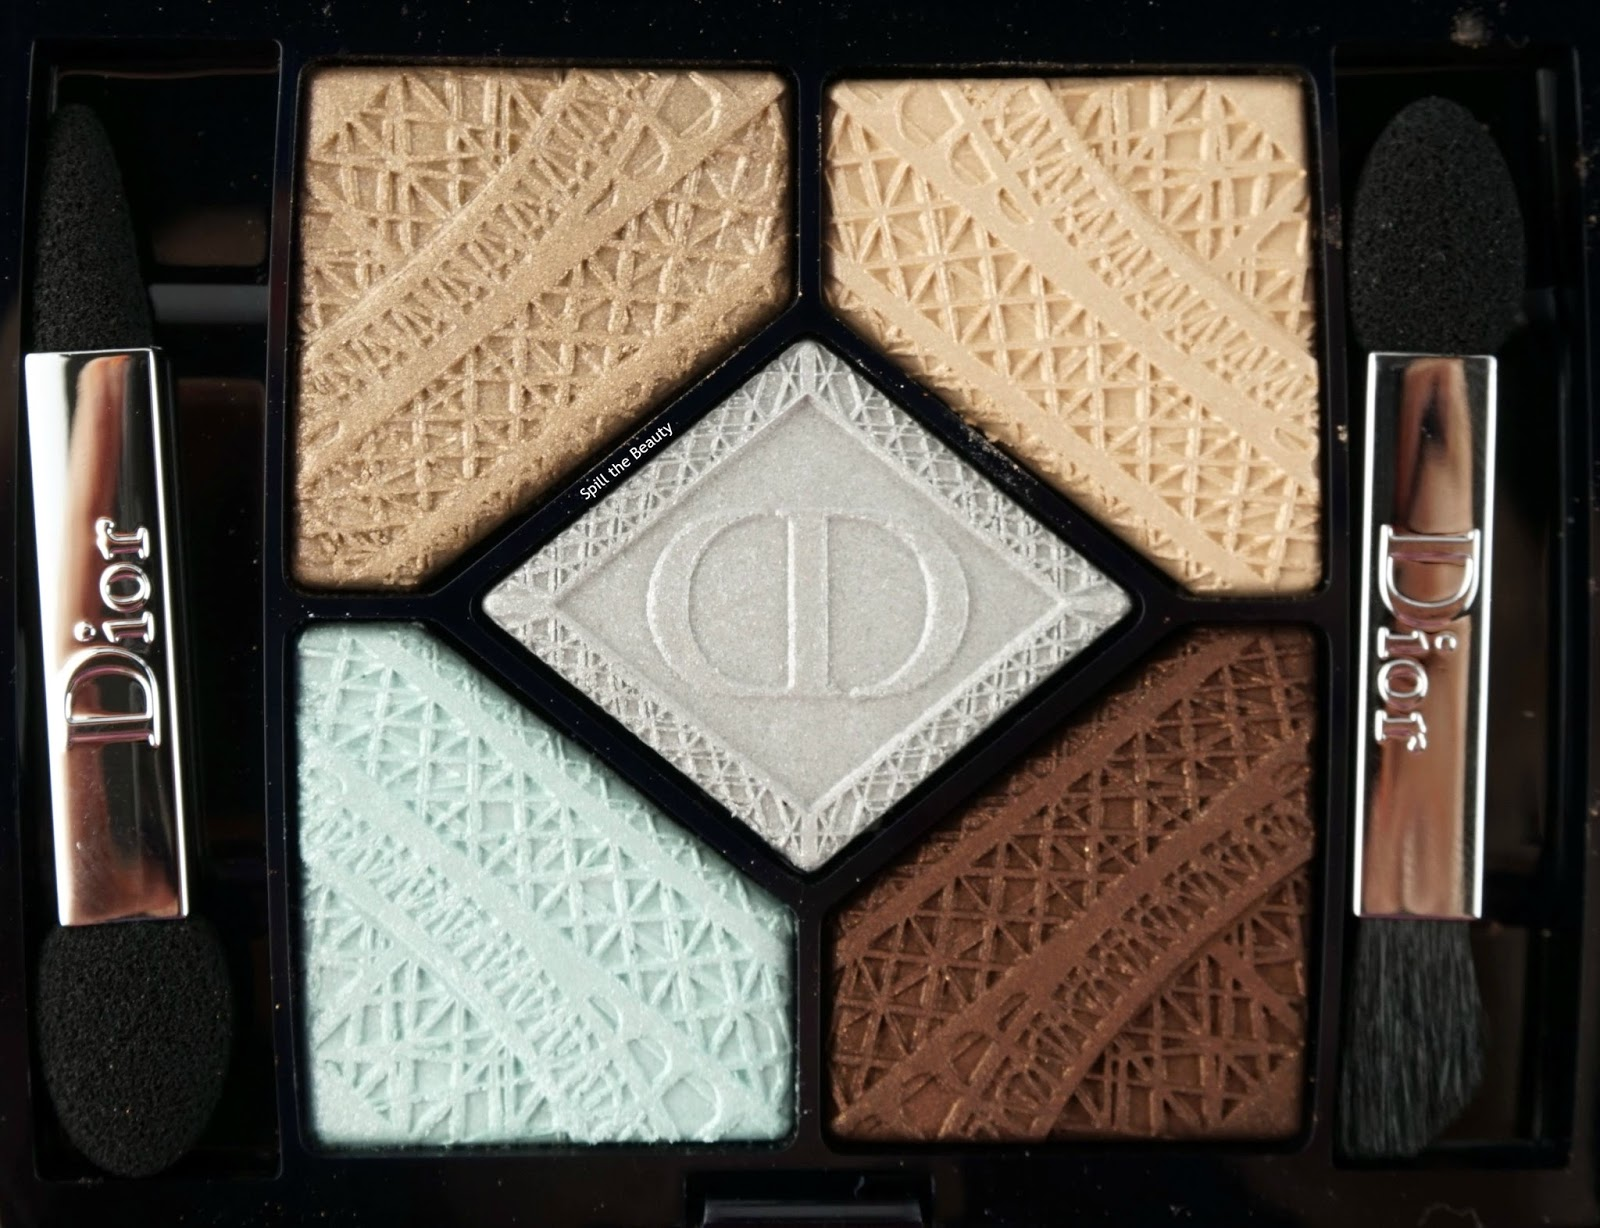 dior 5 couleurs skyline eyeshadow palette parisian sky review swatches close up